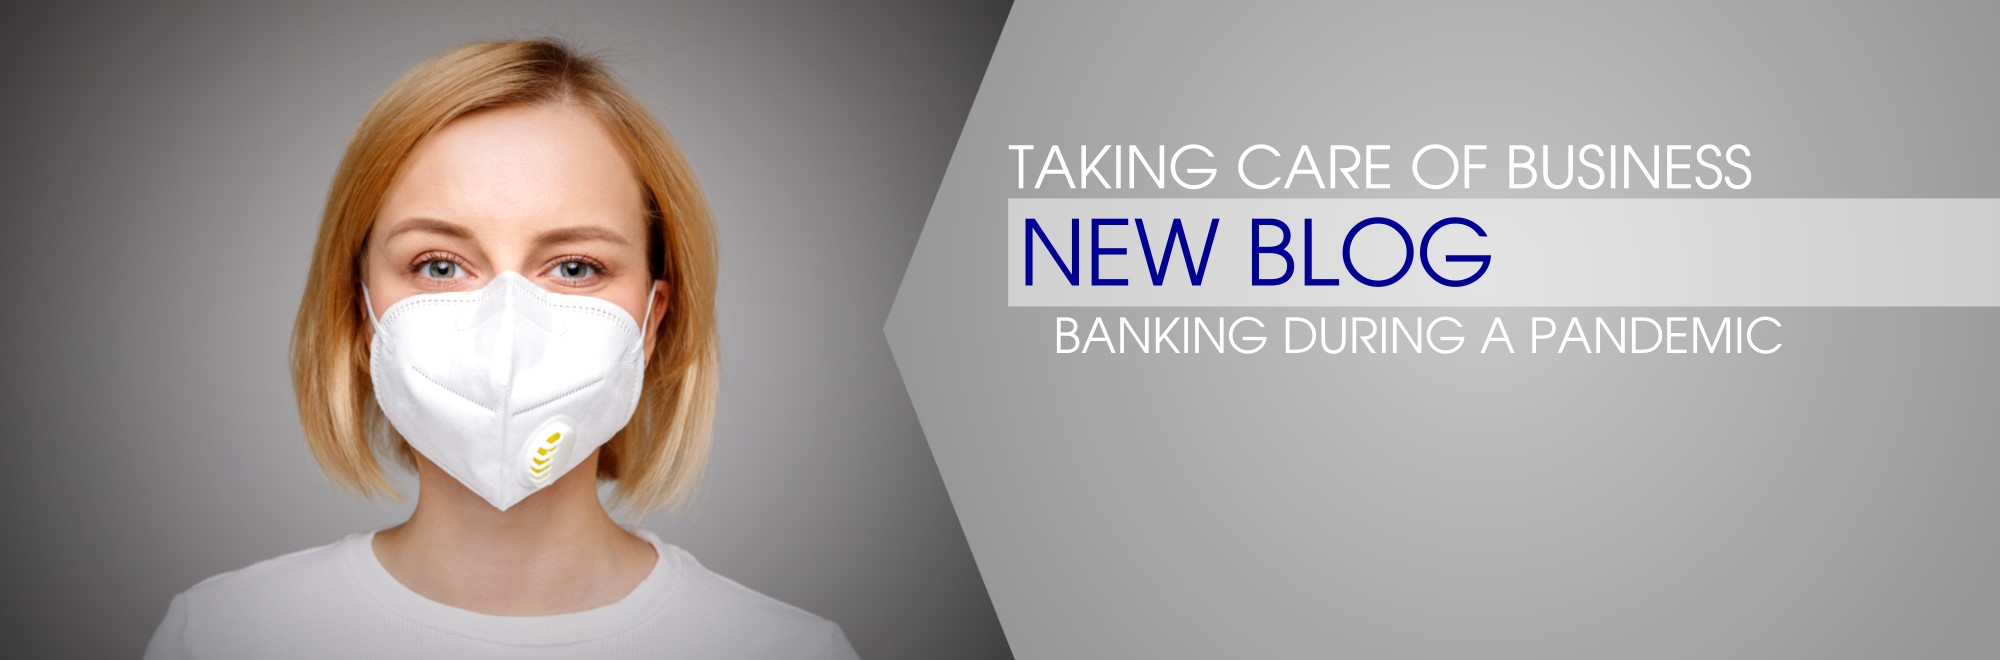 taking care of business- new blog- banking during a pandemic